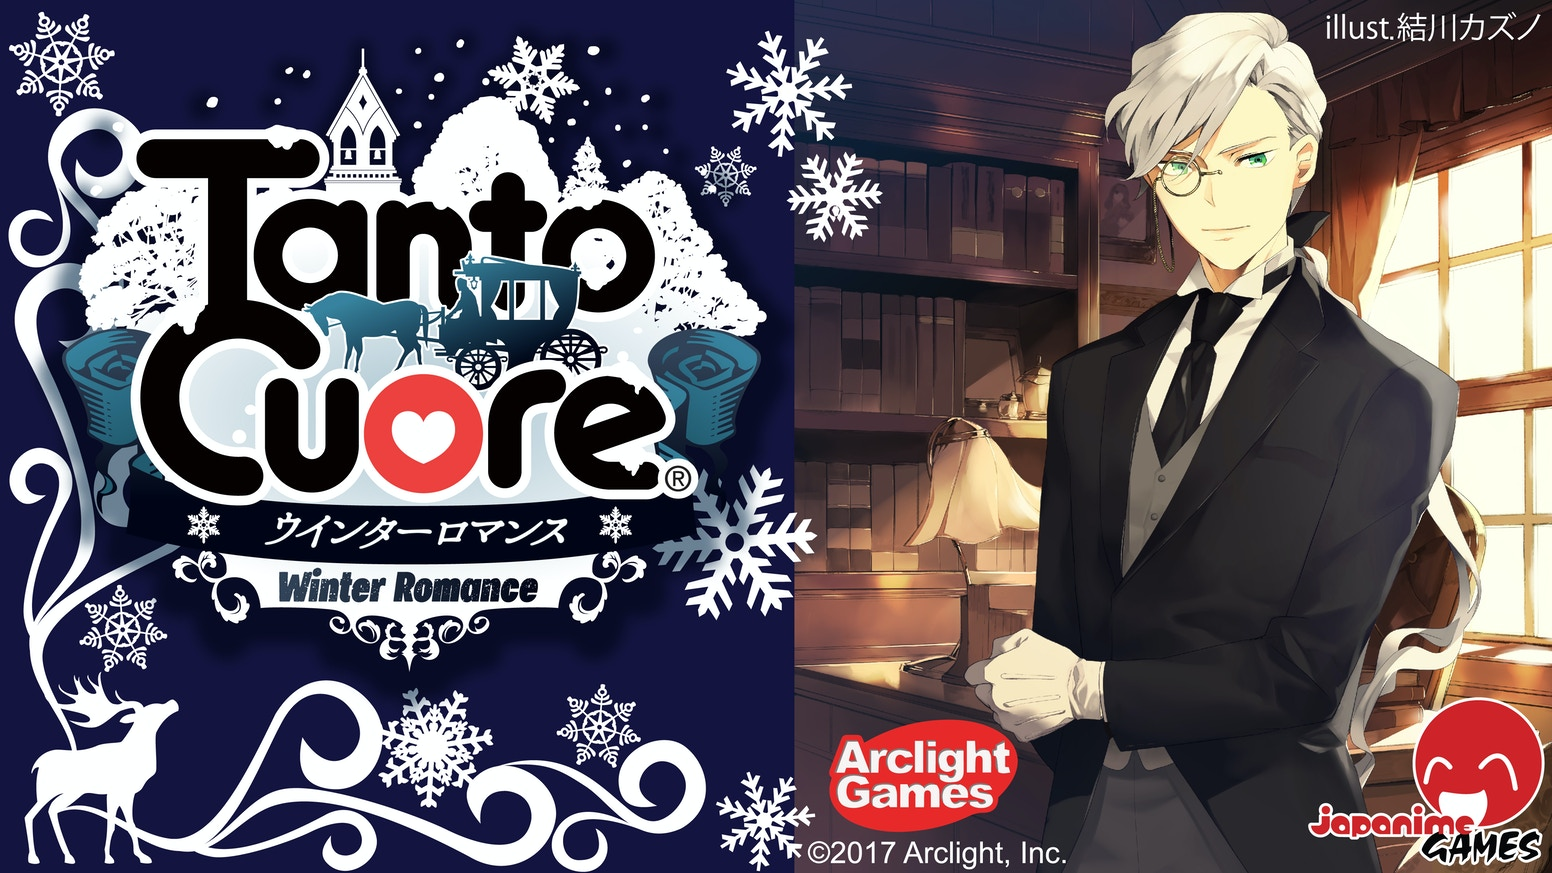 Winter Romance introduces Butlers, romance & new game mechanics to Tanto Cuore! Ignite the fires of love to escape the cold of winter!